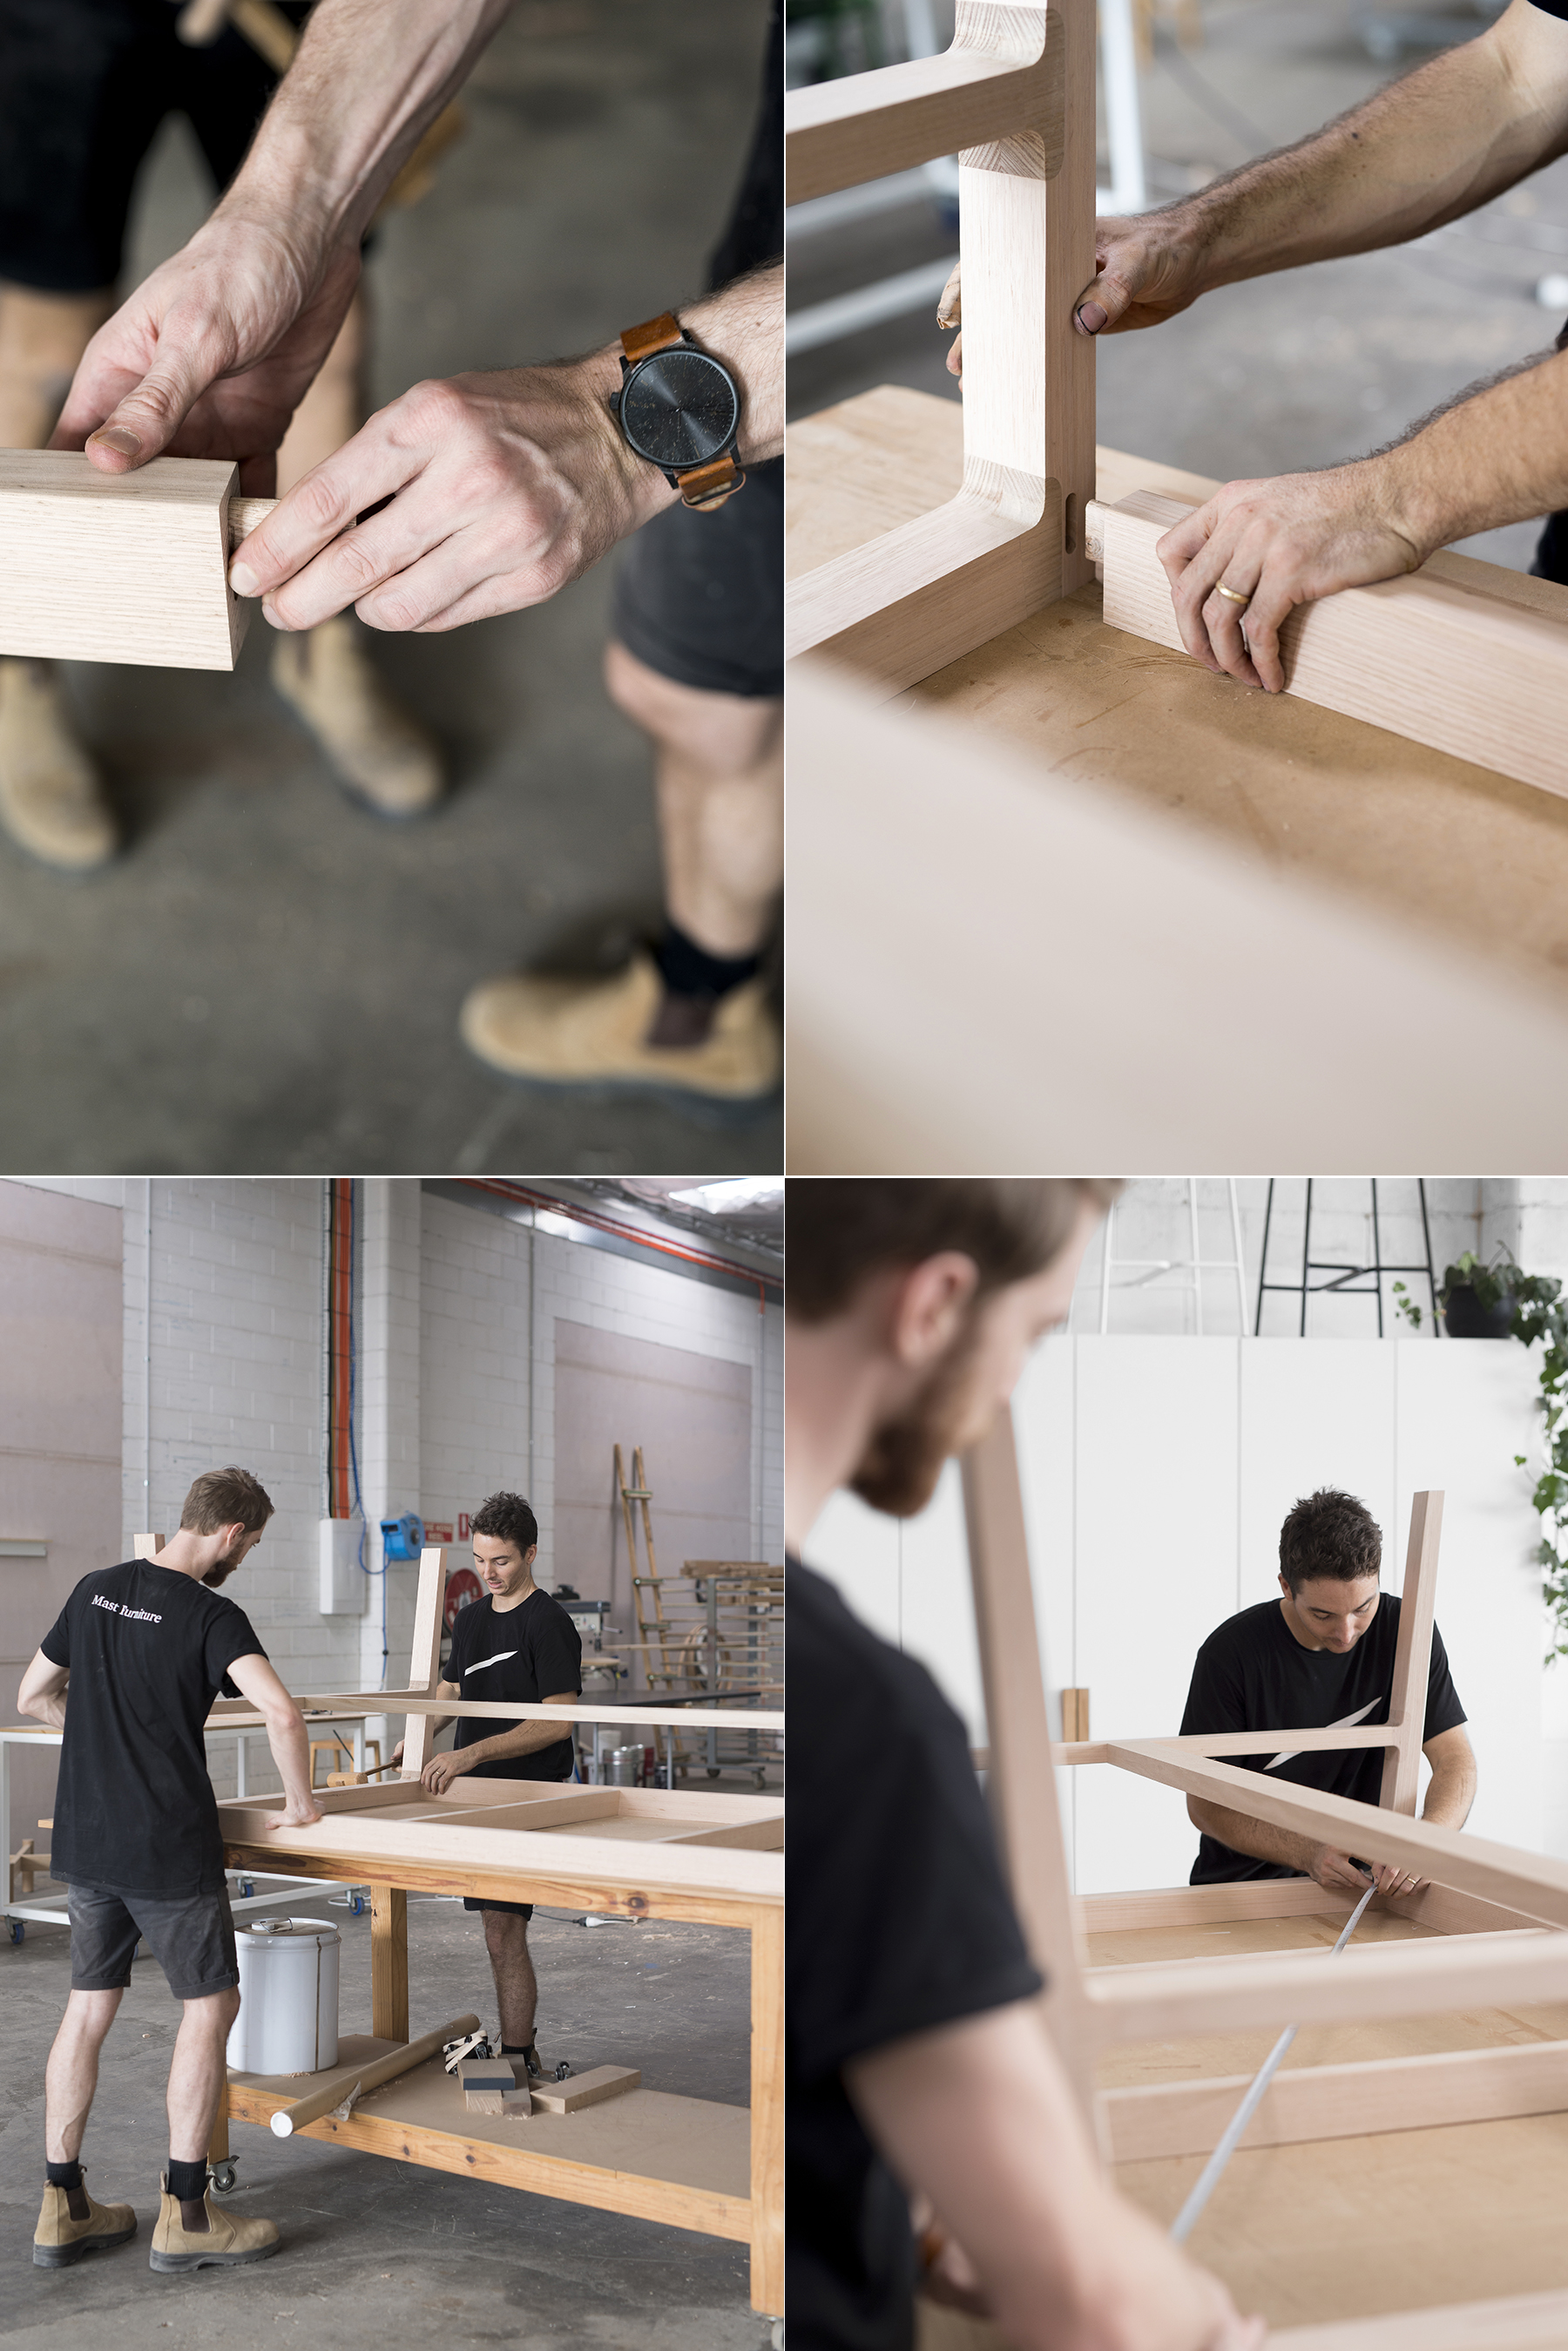 TOP LEFT & RIGHT: The guys fit a tenon into a mortise (the slot the tenon fits into) and then connect the Willox table top frame to the legs. Woodworkers around the world have used mortise and tenon joints for thousands of years to provide structural integrity within furniture.